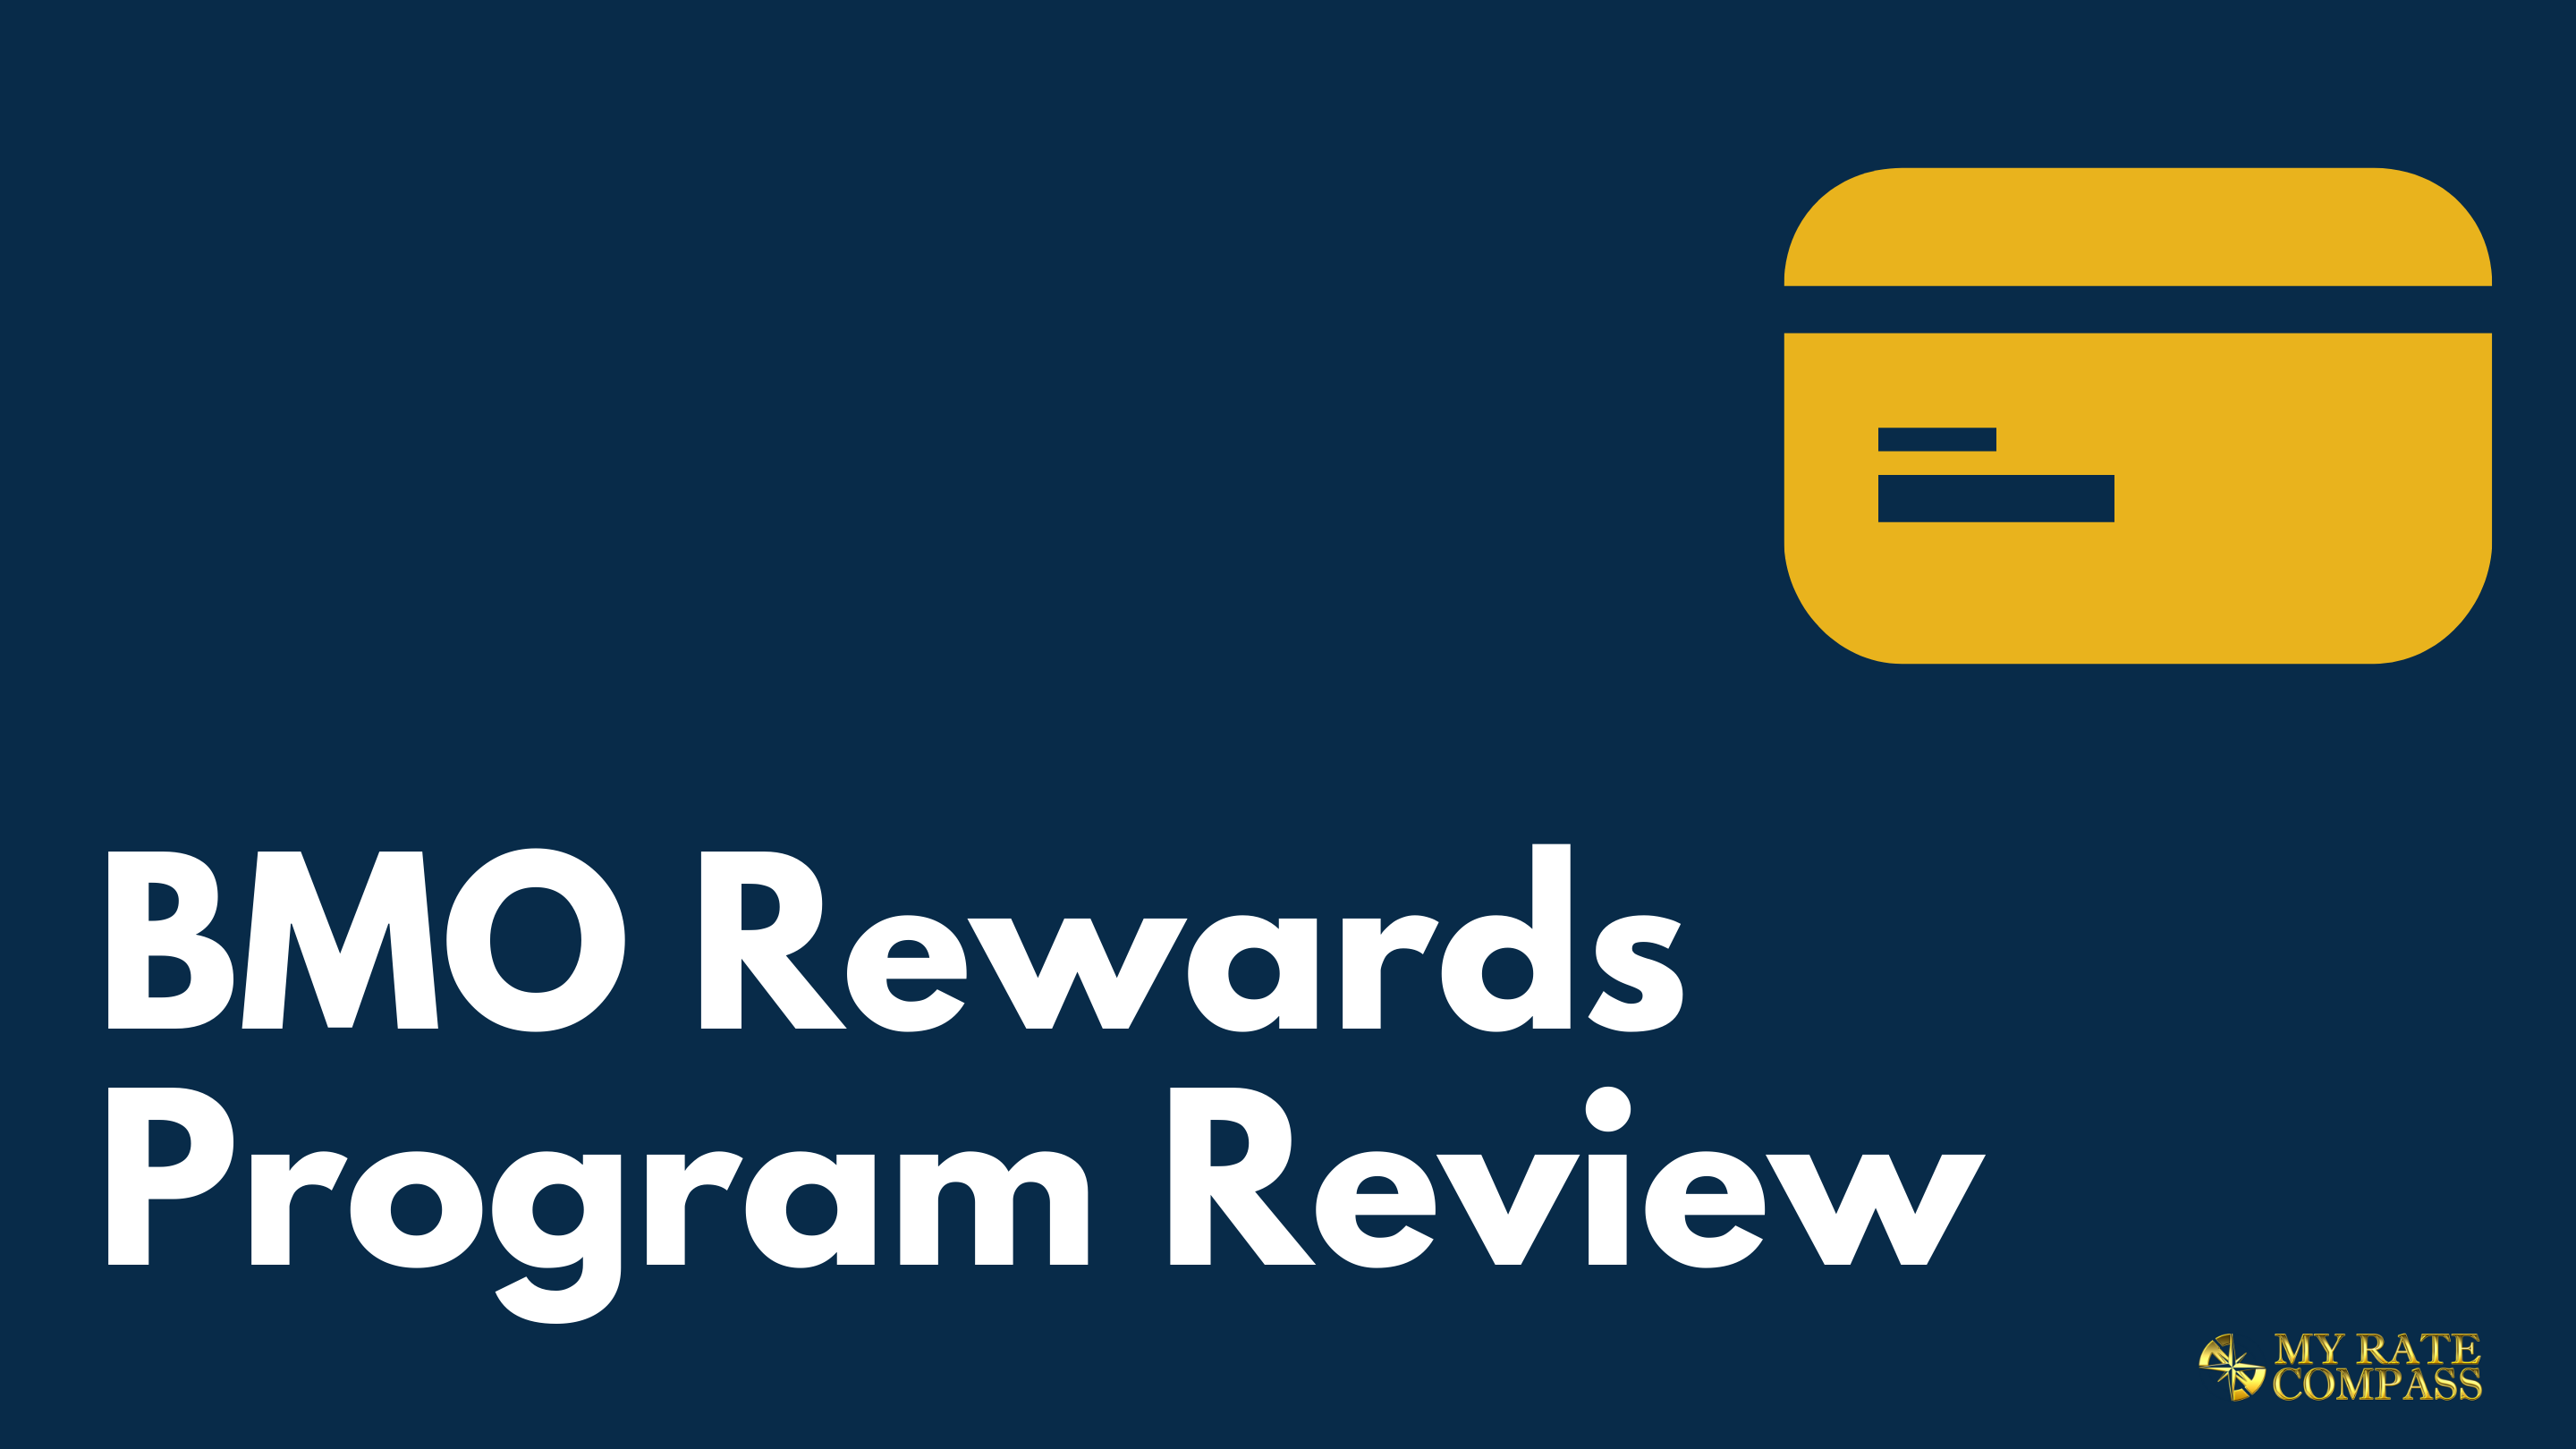 BMO Rewards Points Program